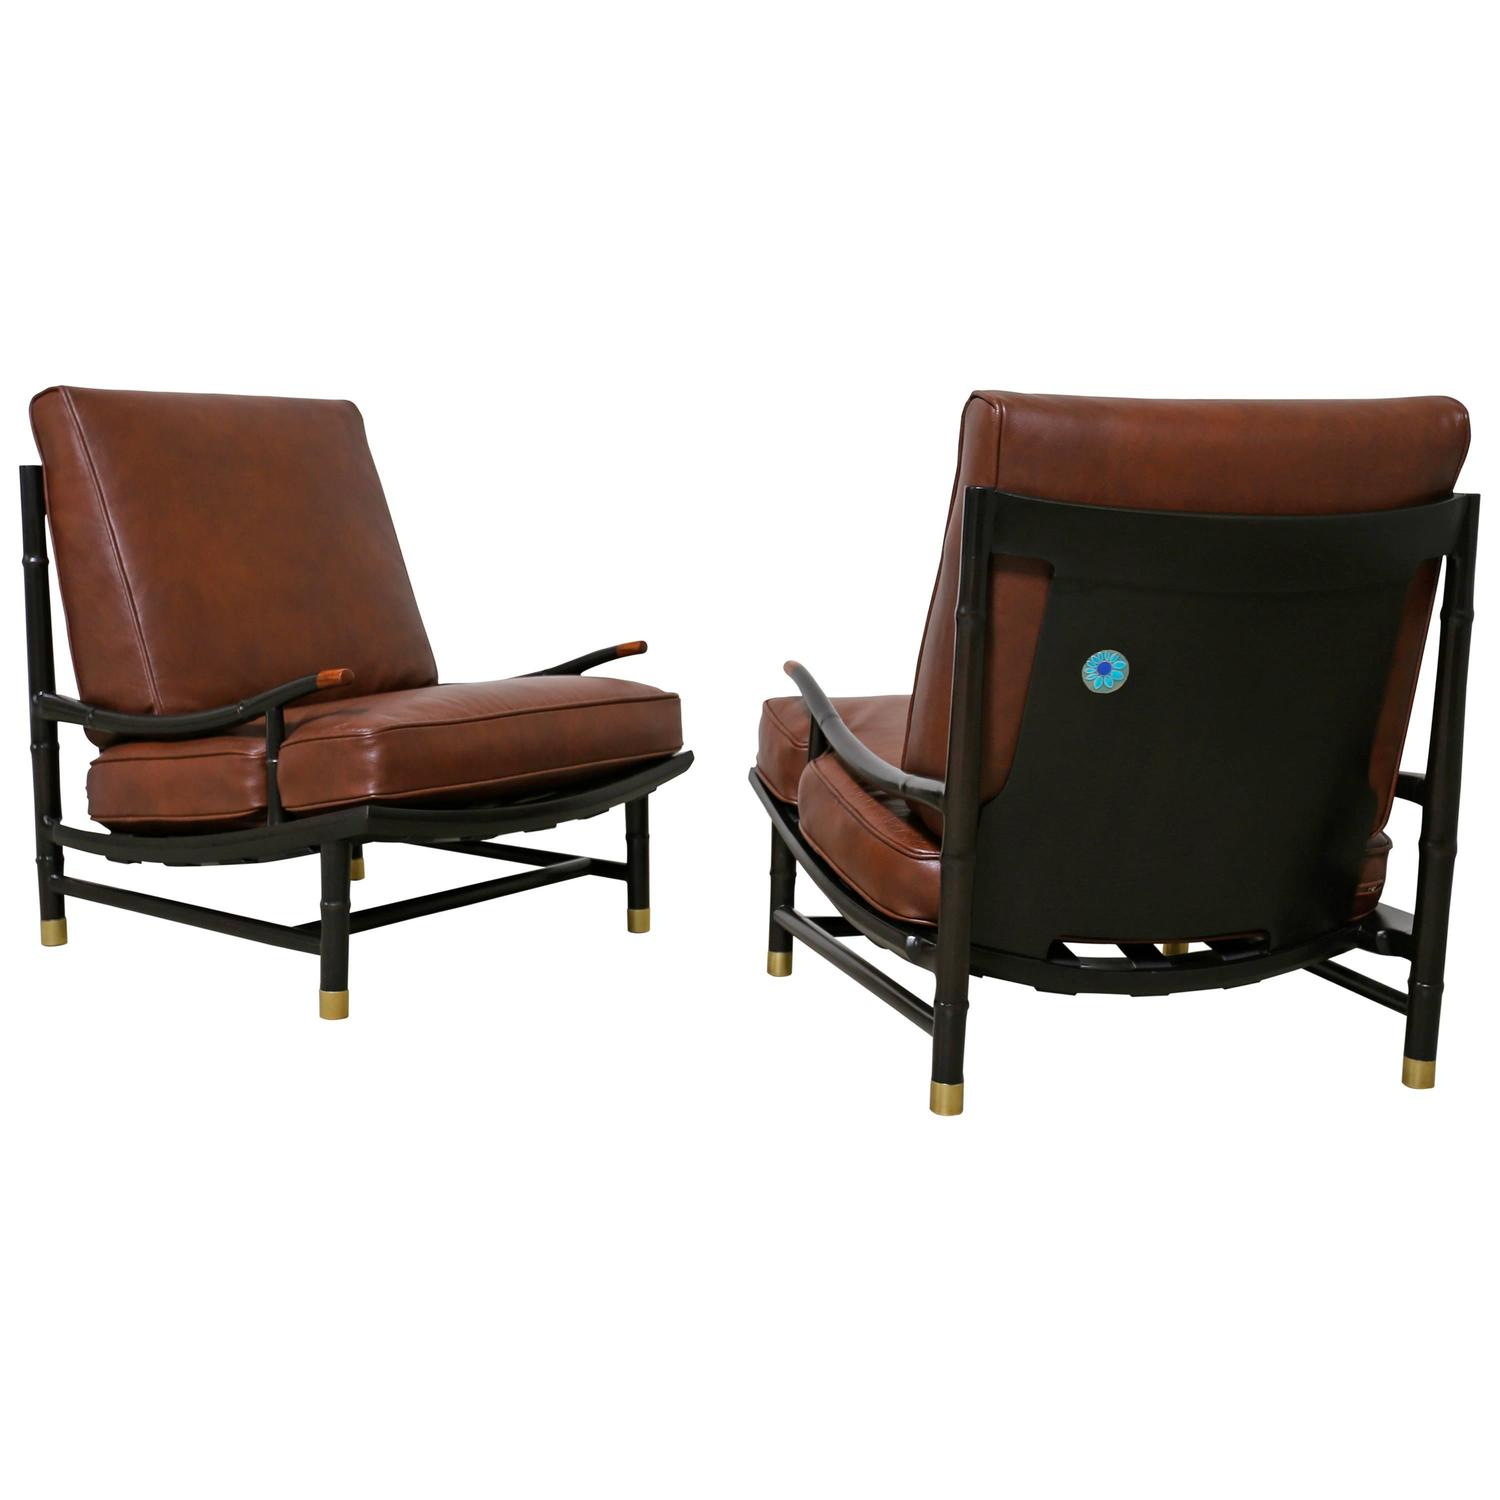 Rare Lounge Chairs by Frank Kyle with Accents by Maggie Howe For